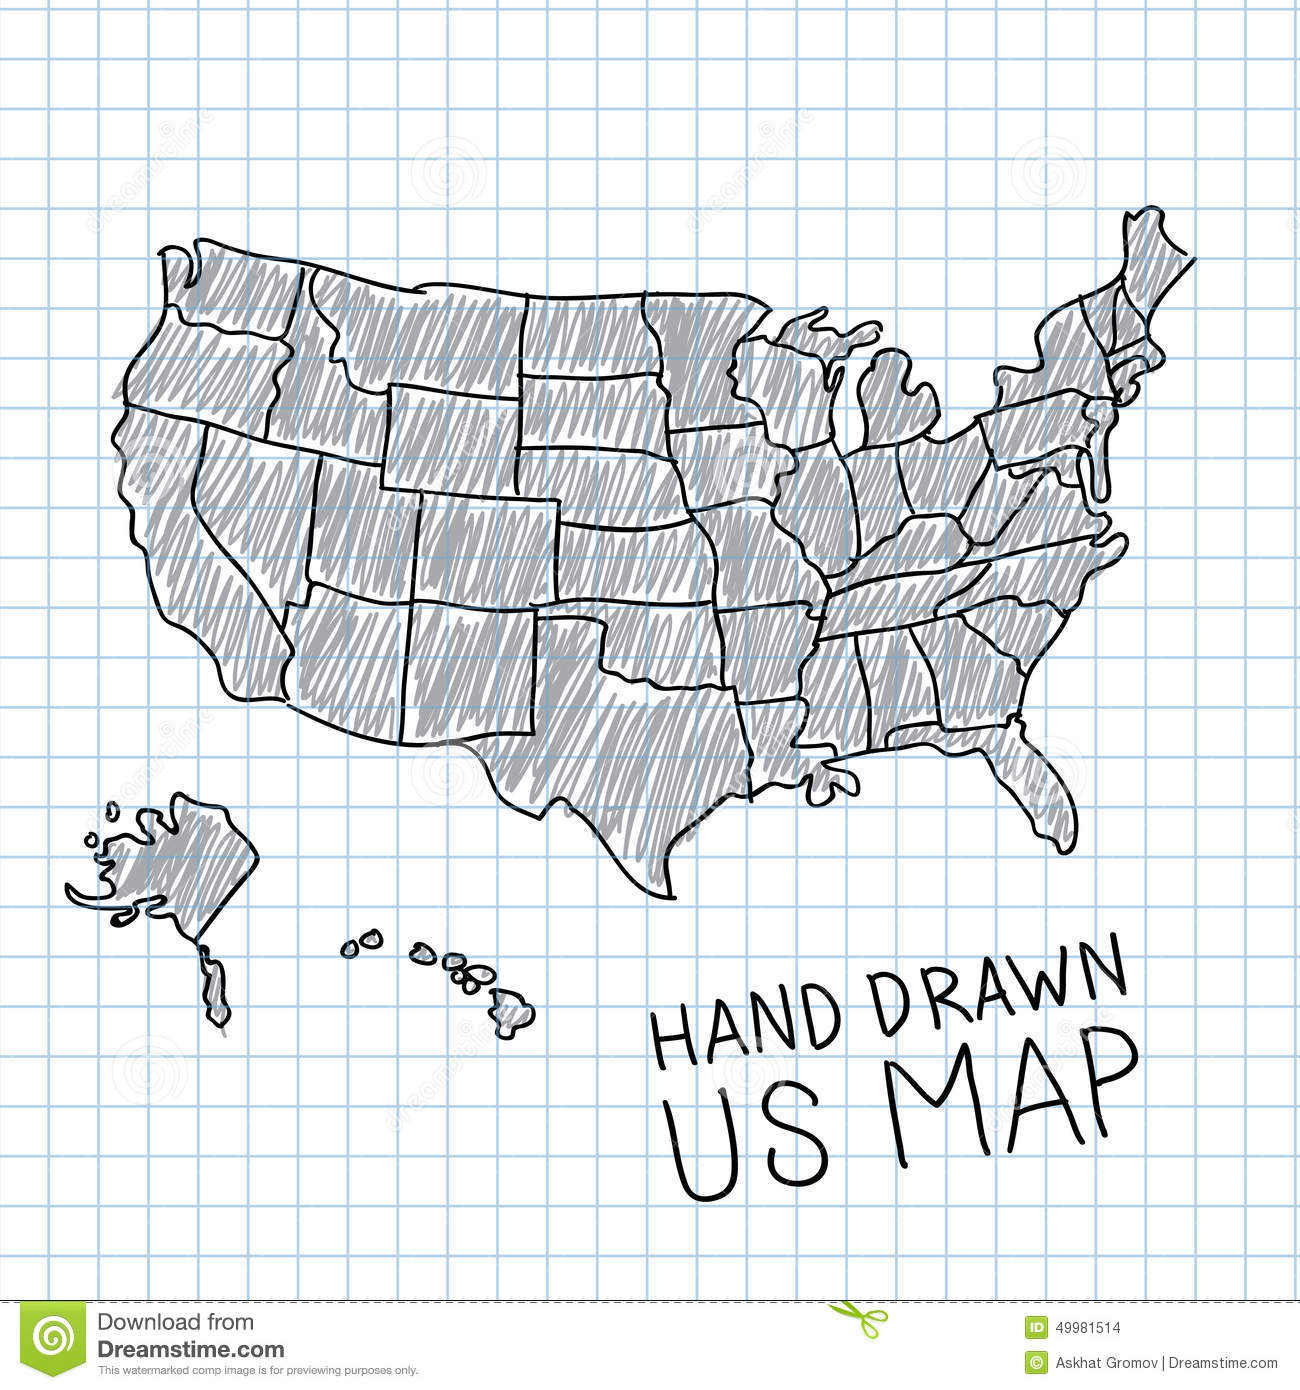 Hand Drawn US Map Stock Vector Image - Hand drawn us map vector